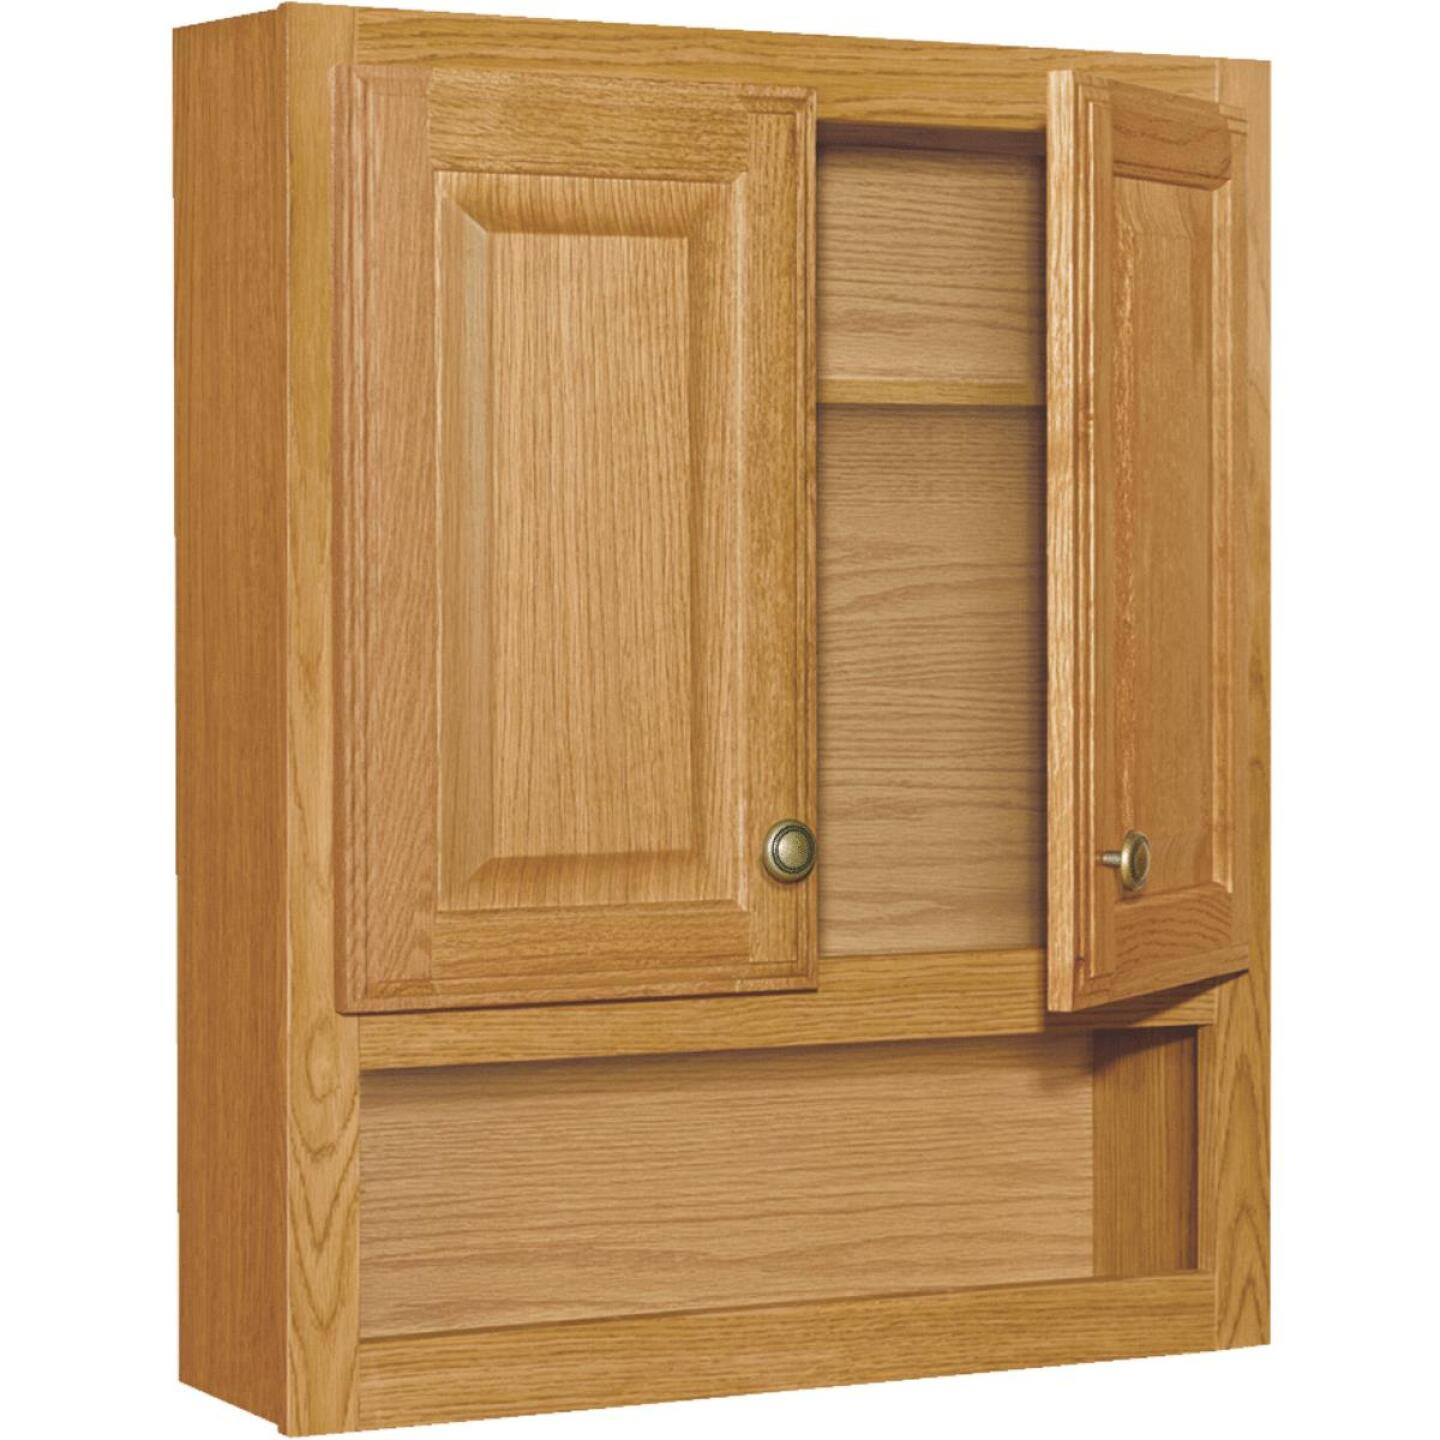 Continental Cabinets Modular Honey Oak Finish 23-1/4 In. W. x 28 In. H. x 7-1/4 In. D. Wood Wall Bath Cabinet Image 2